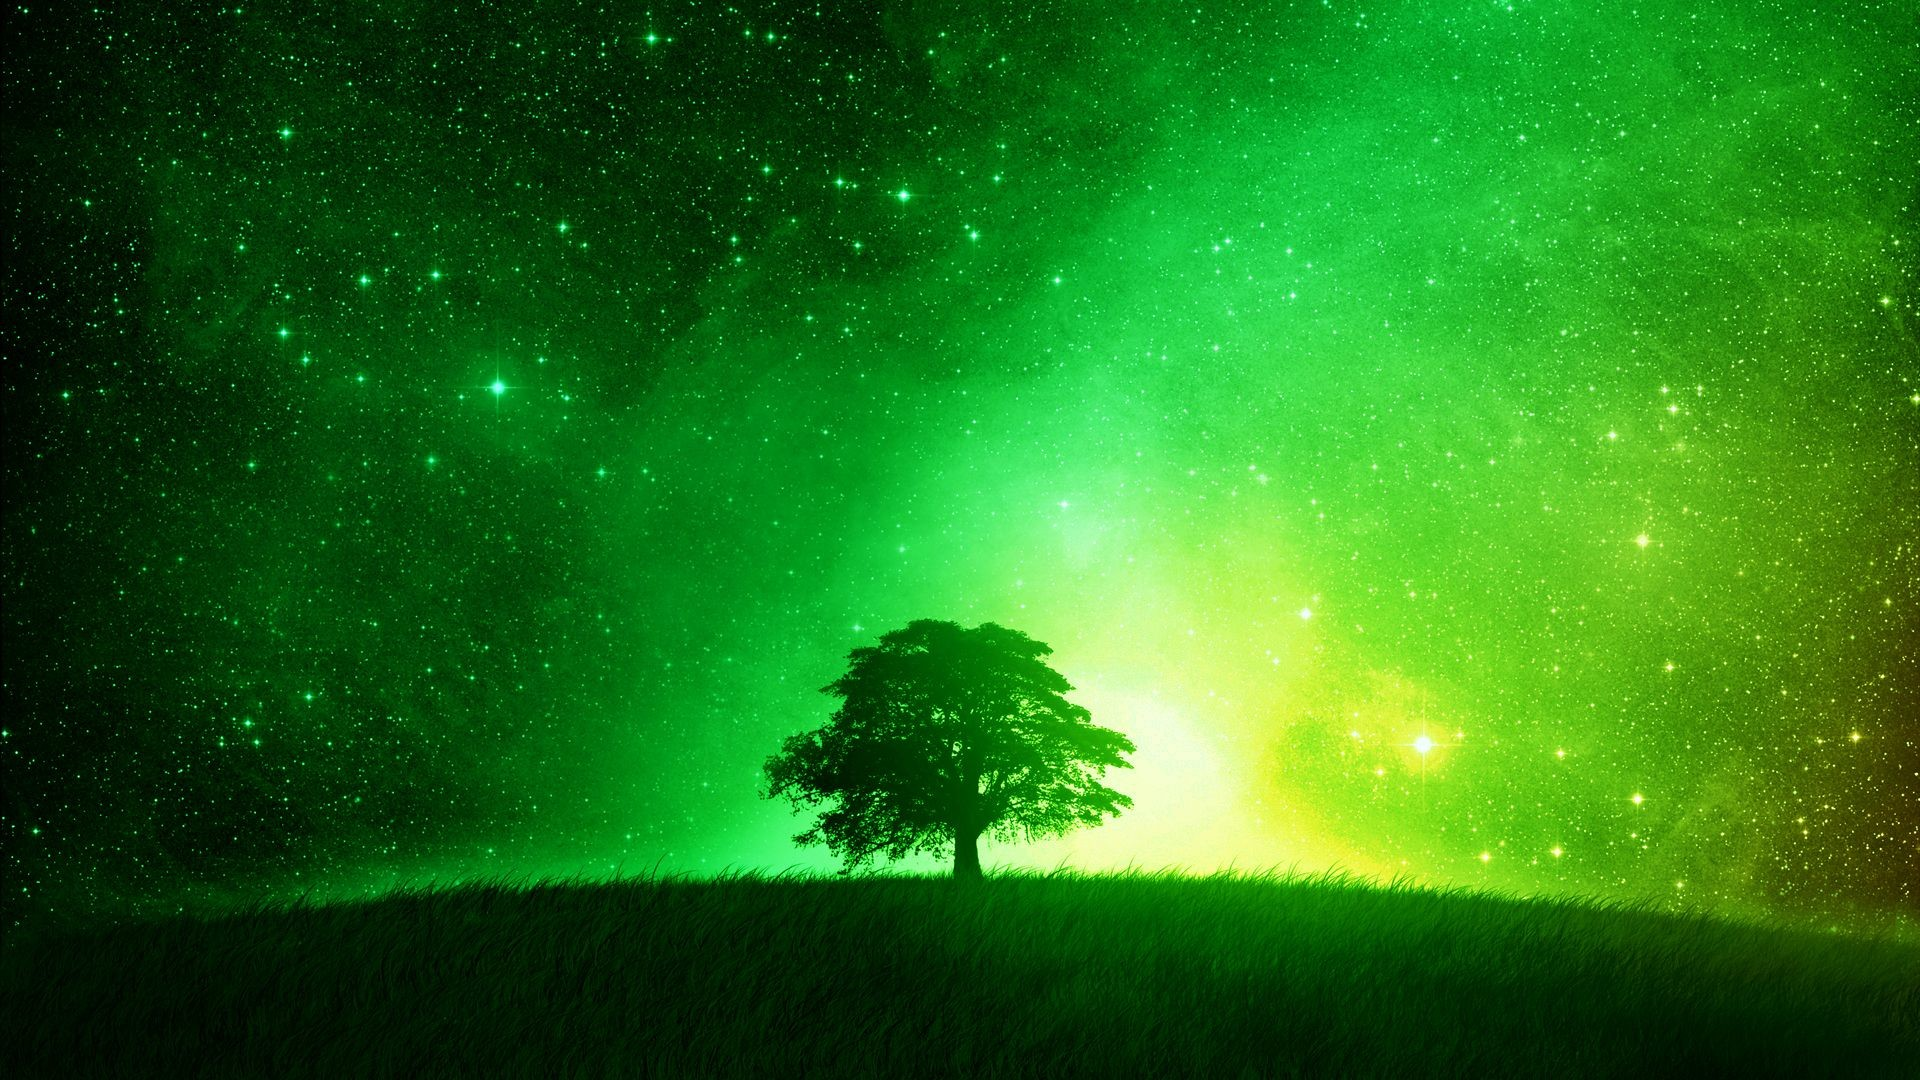 1920x1080 Glowing green tree desktop background